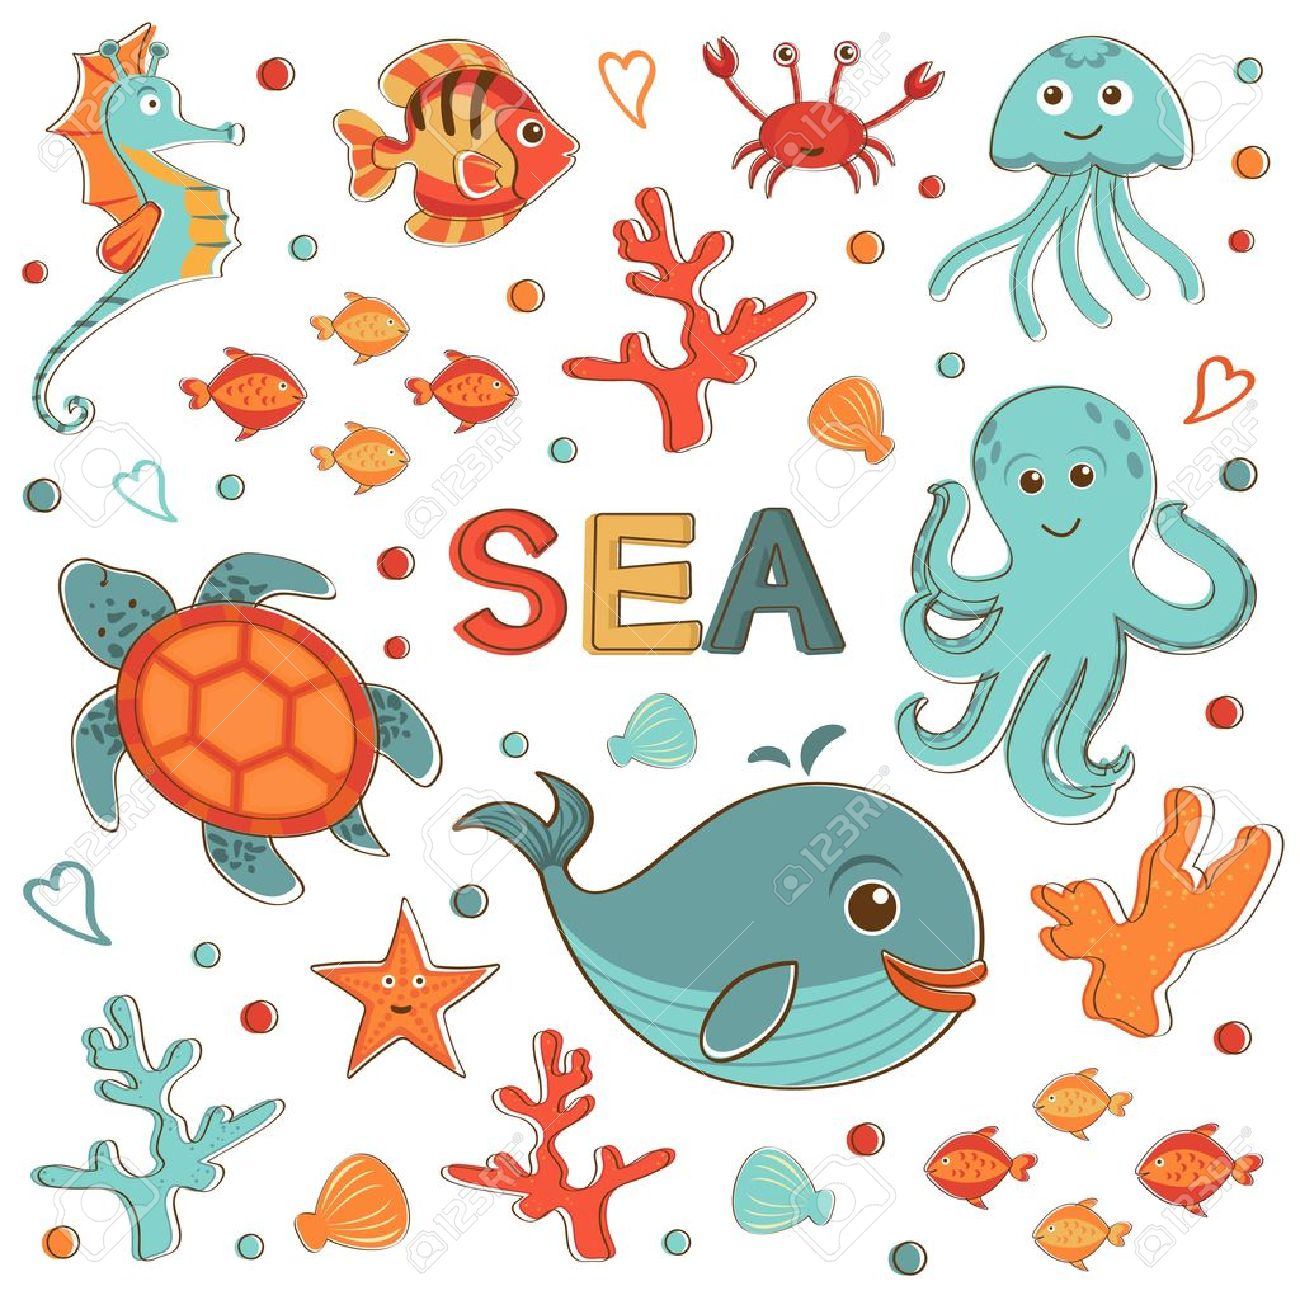 cute sea creatures collection format royalty free cliparts